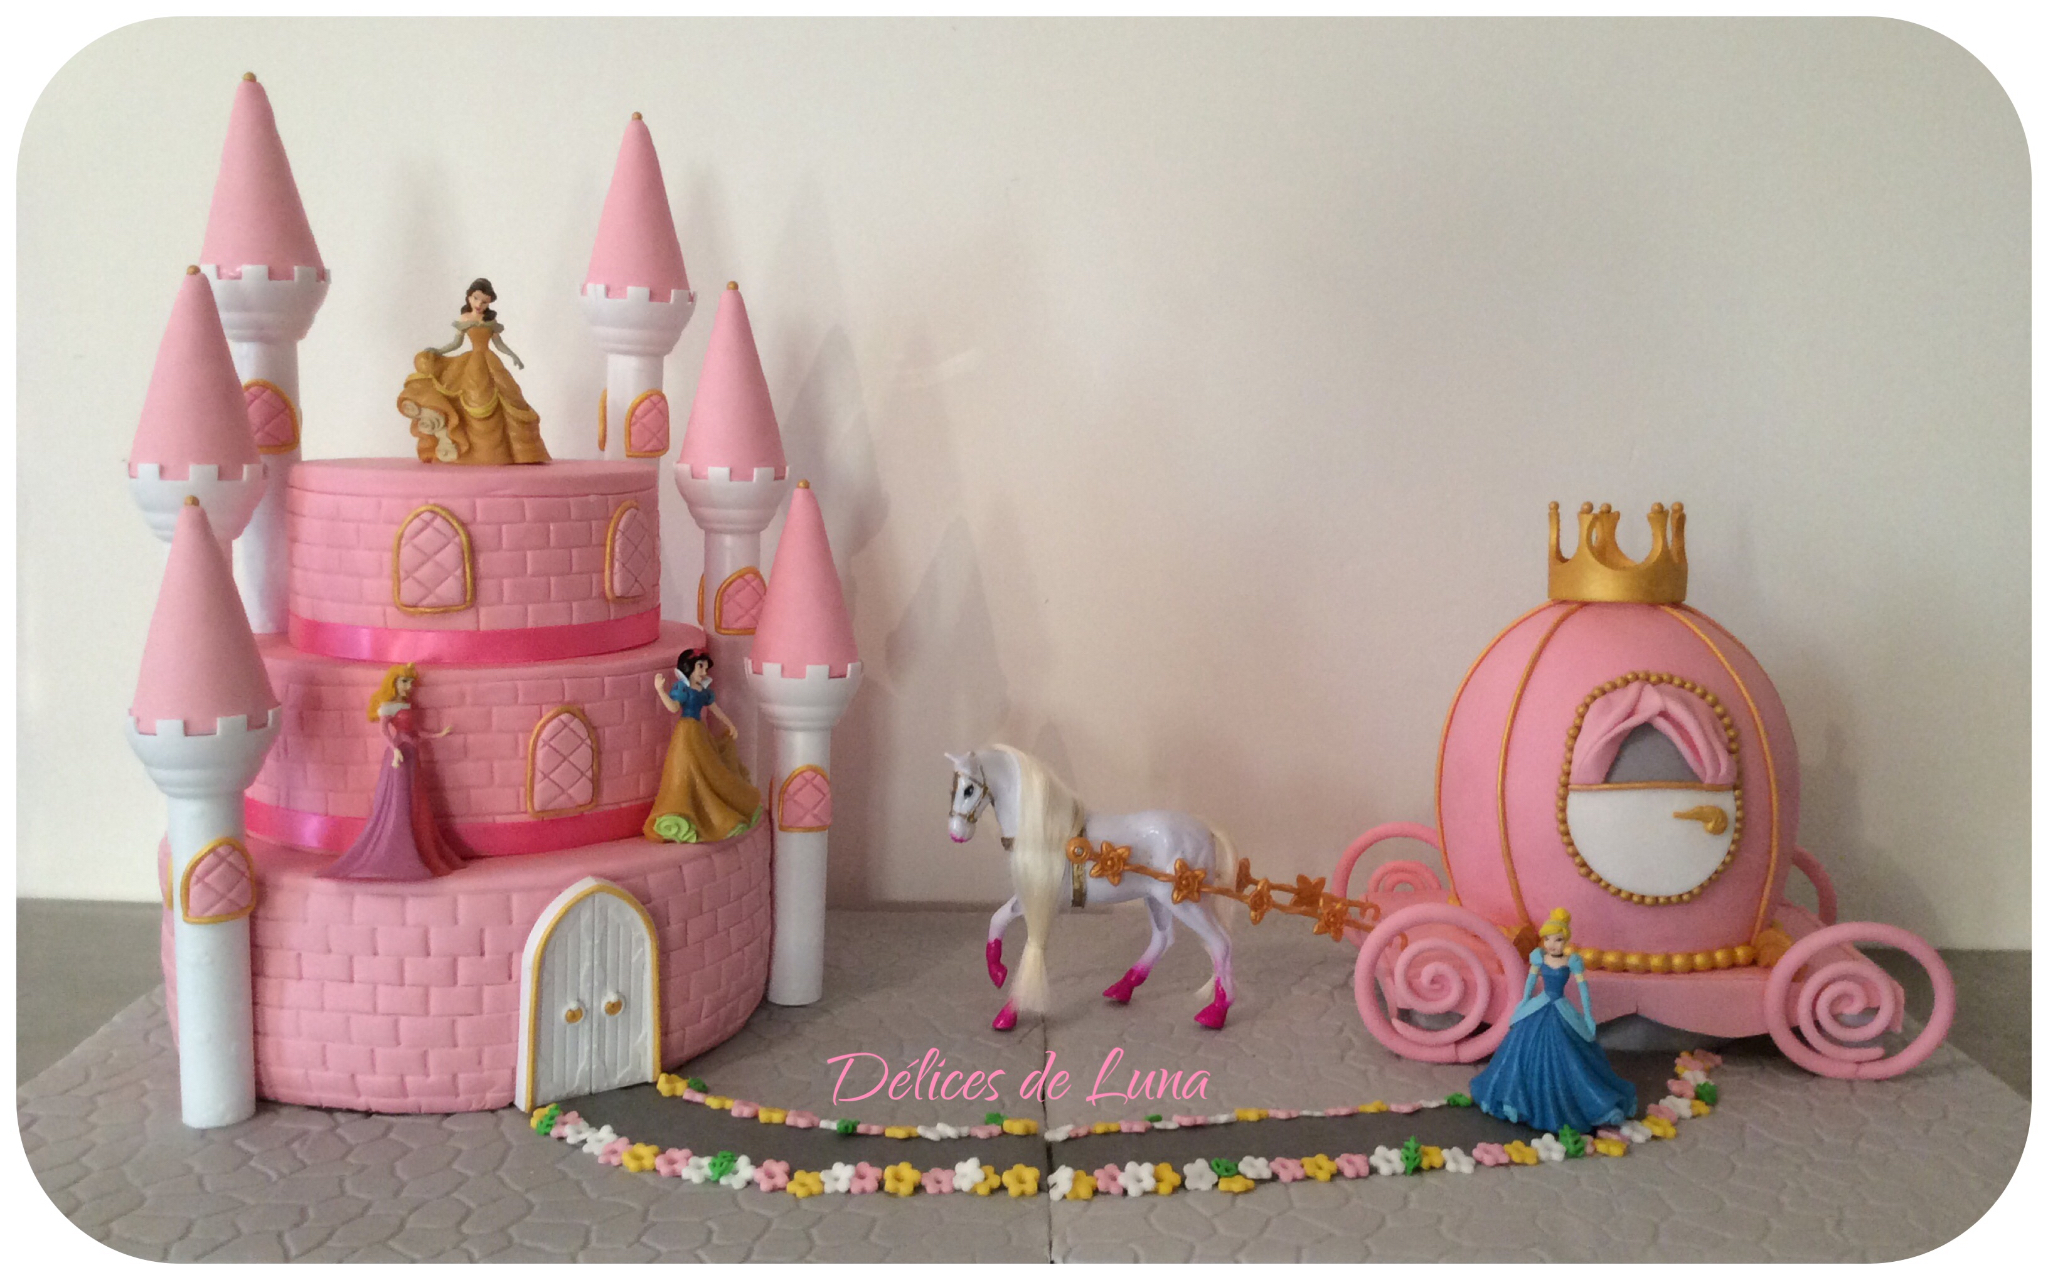 Ch teau et carrosse princesses disney pour premi re for Image chateau princesse